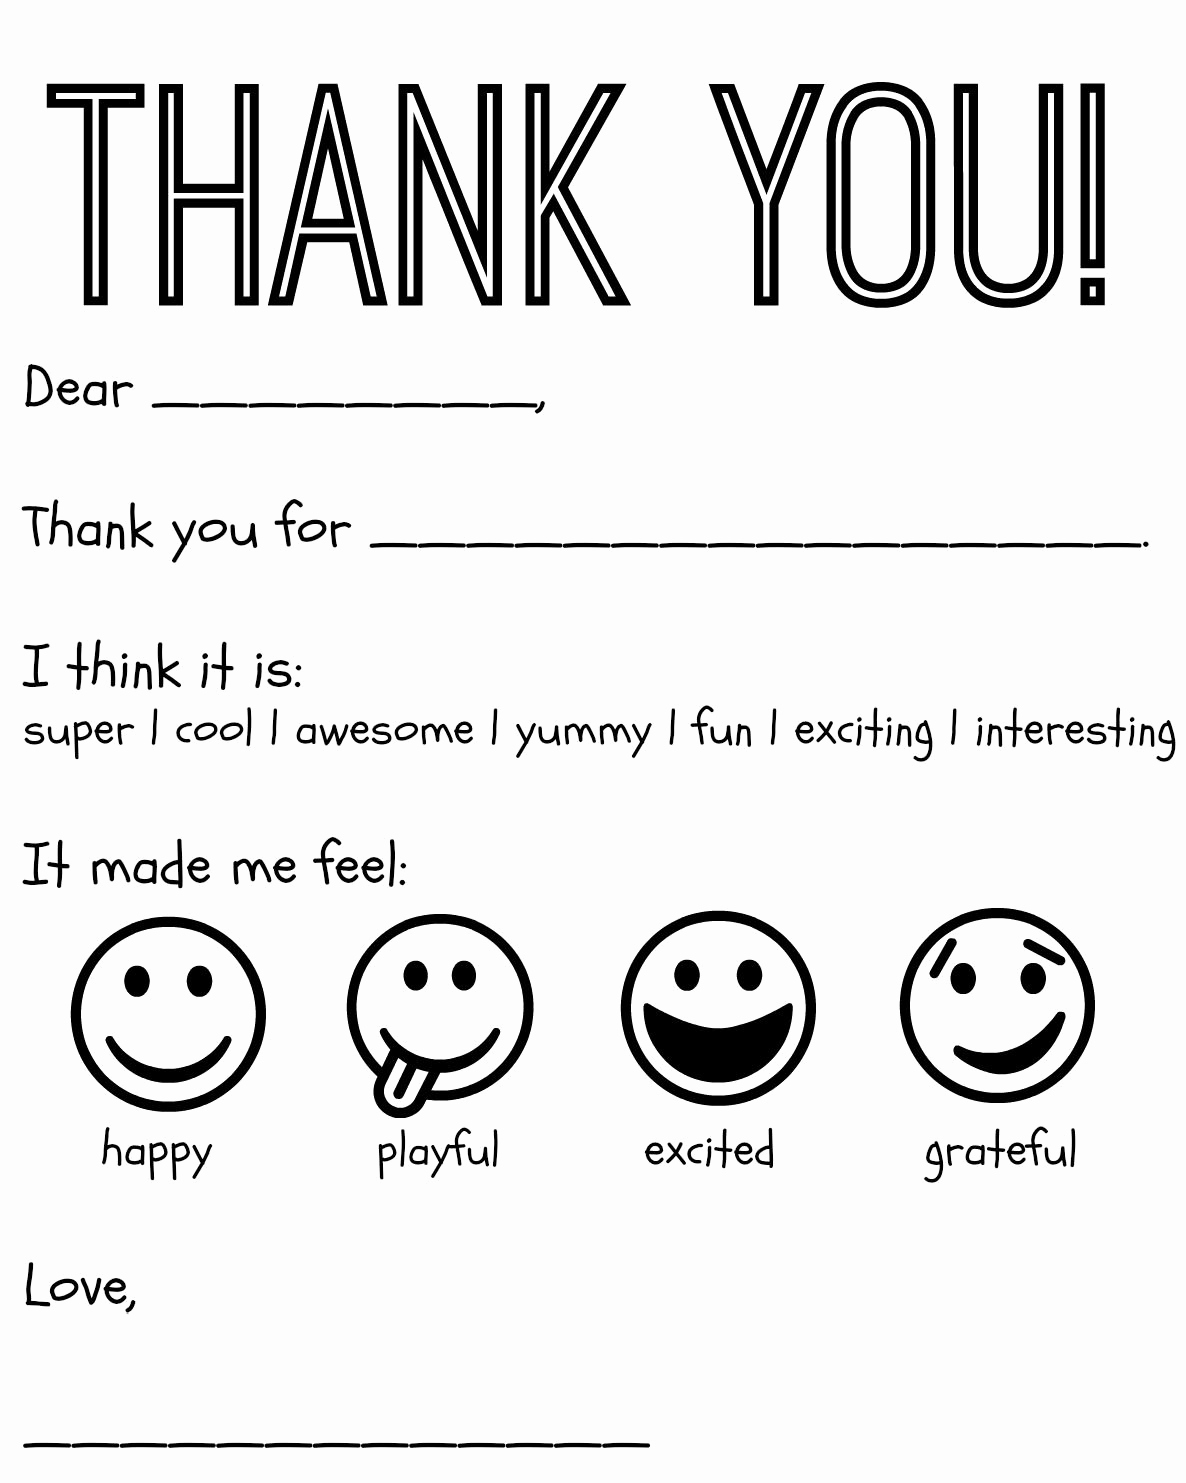 Free Thank You Note Template Fresh Free Printable Kids Thank You Cards to Color